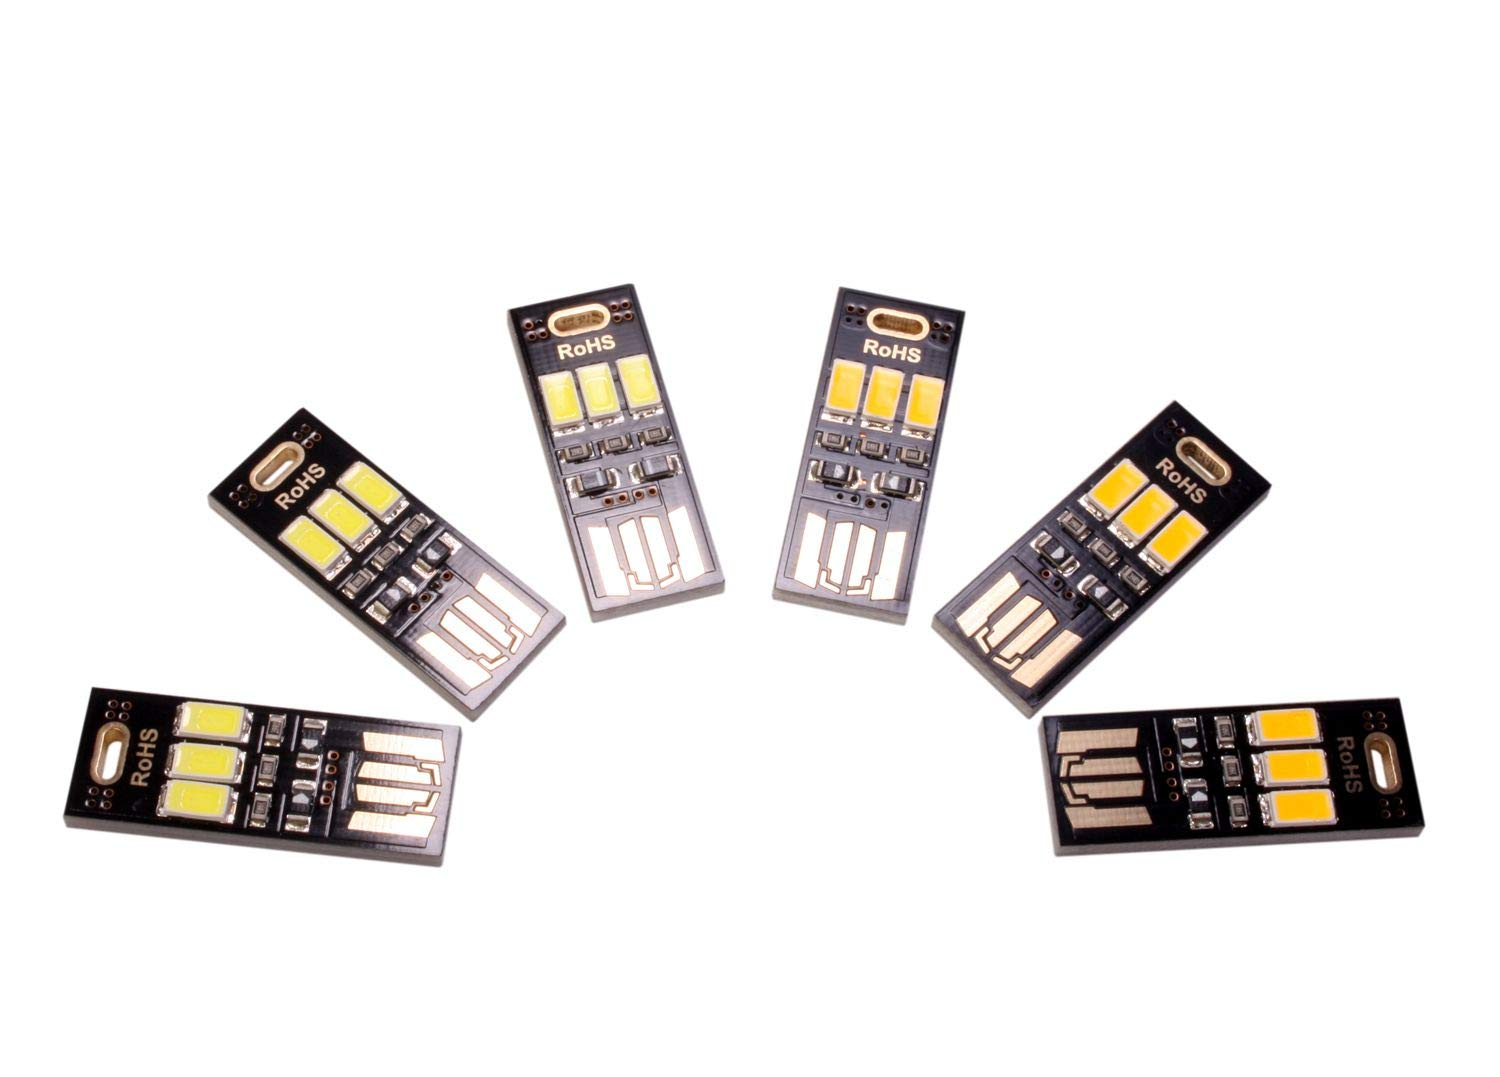 6-Pack Mini LED USB Lights, Ebyphan Stylish Book Light, LED USB Lamps for PC Laptop Computer Keyboard (Mixed, 3 White Lights + 3 Yellow Lights)